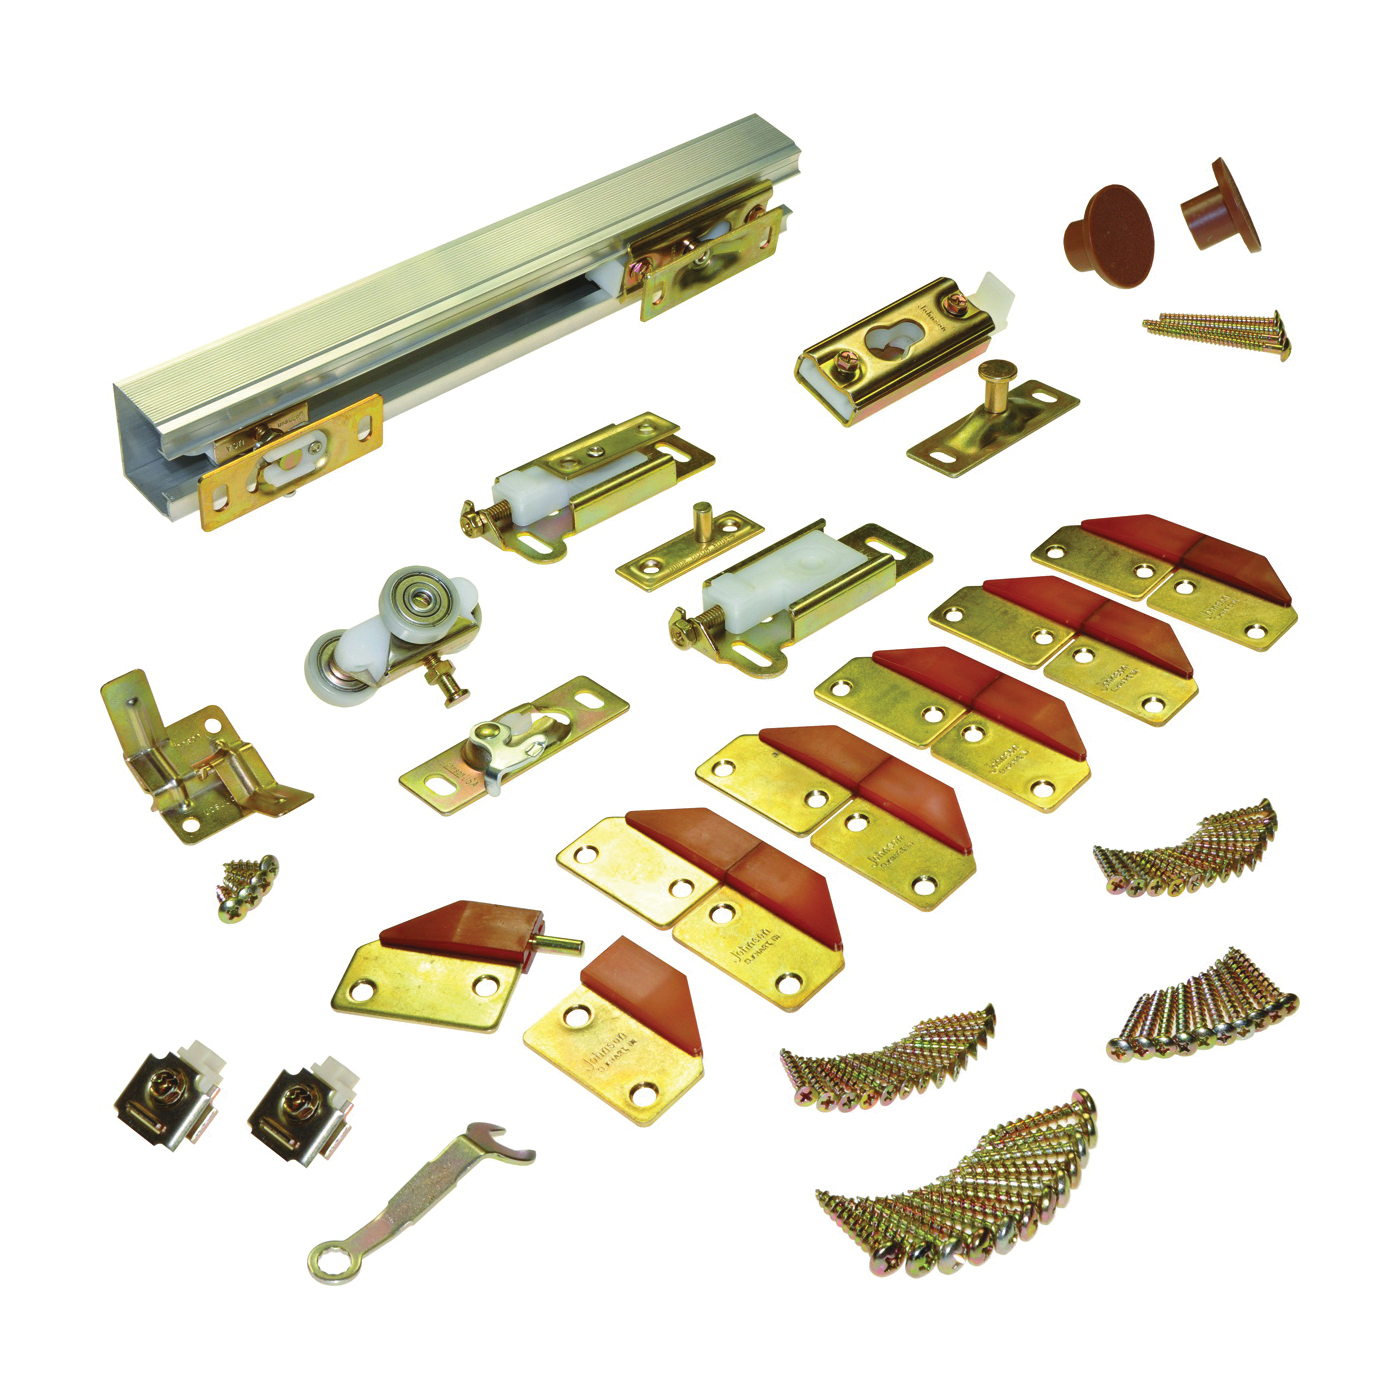 Picture of Johnson Hardware 100FD484 Panel Hardware Set, 1-1/8 to 1-3/4 in Thick Door, Top Mounting, For: 75 lb Bi-Fold Door